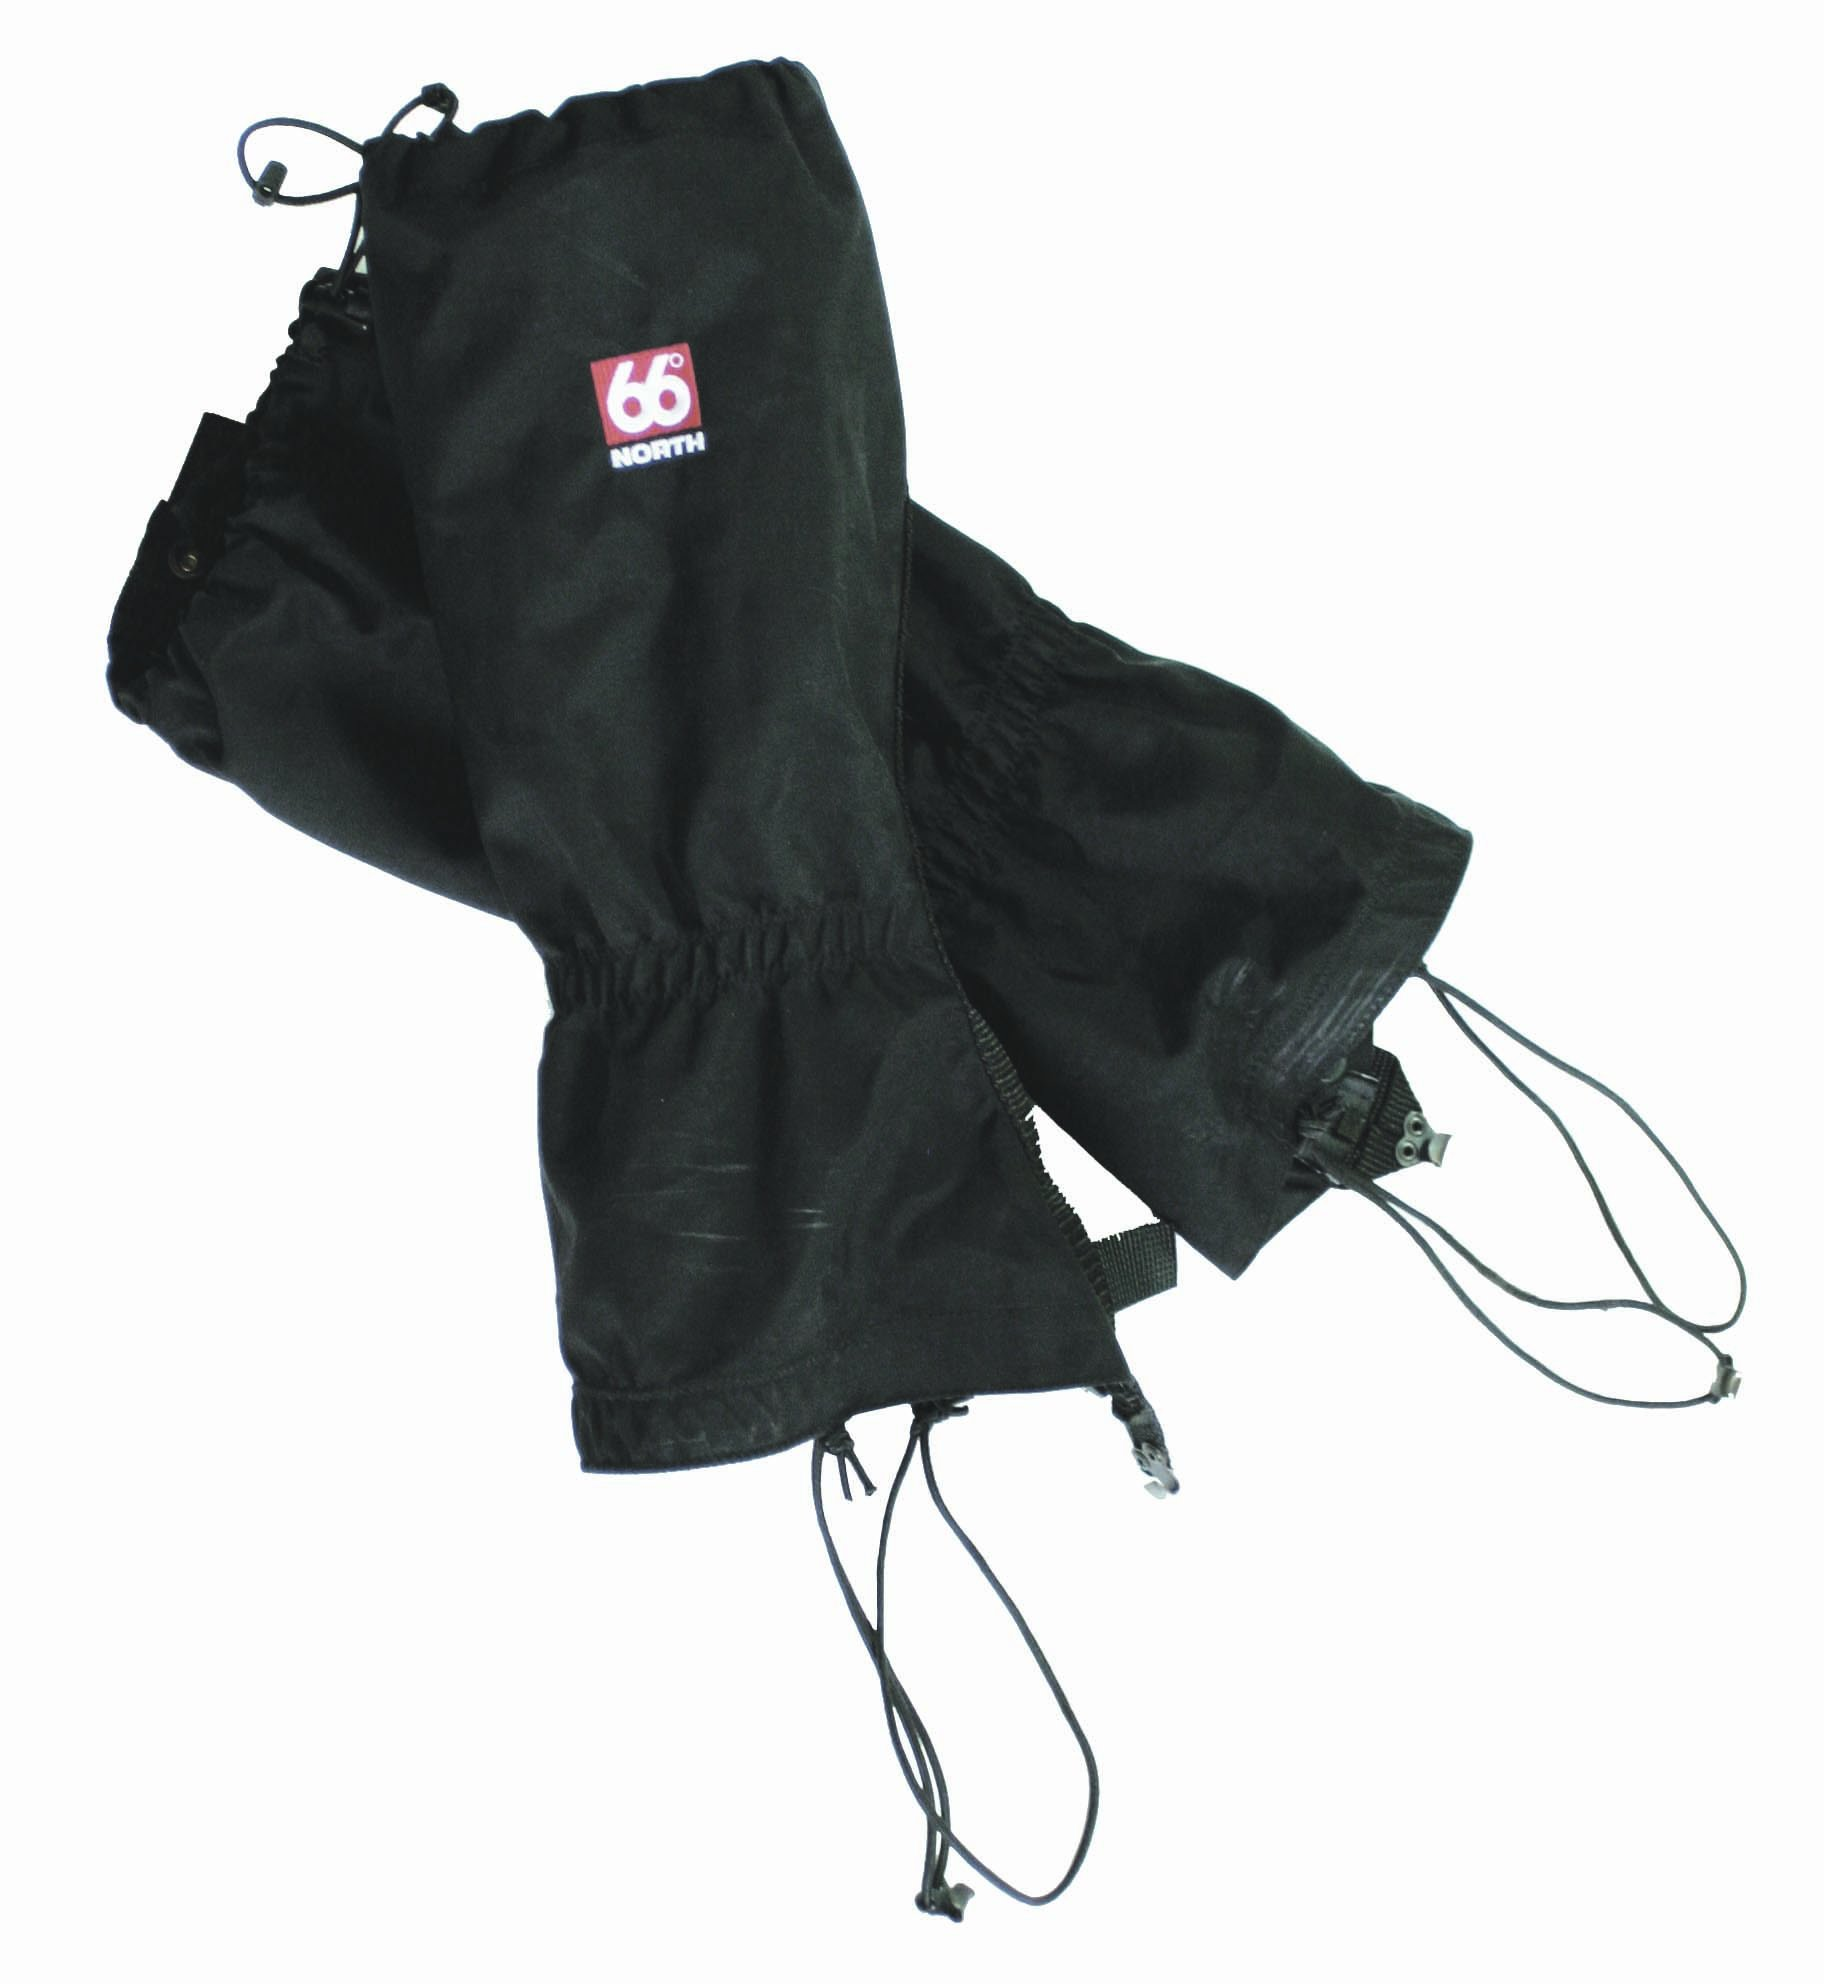 66 North Vantajokull Gaiters by 66 North